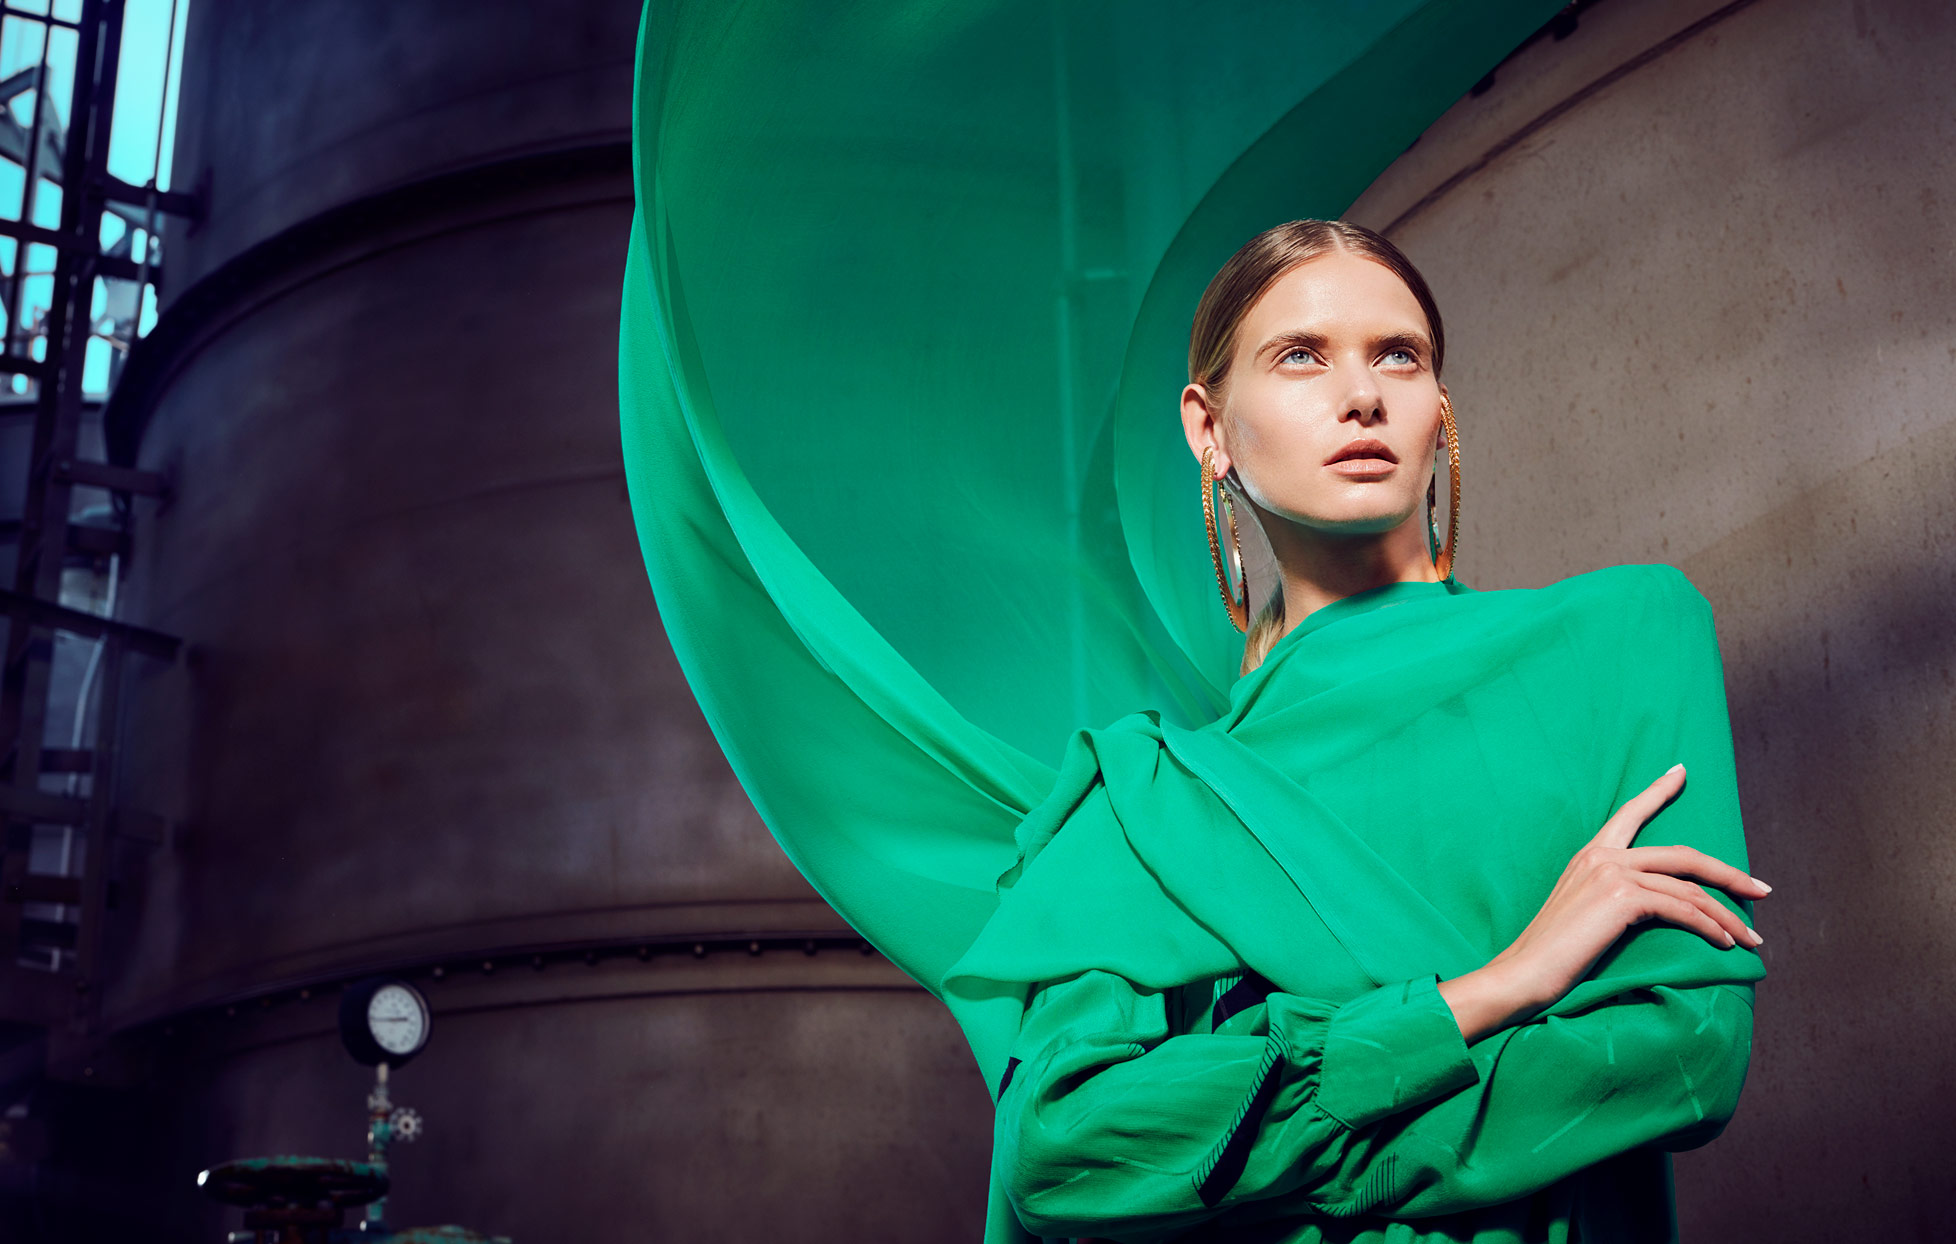 Woman posing with arms crossed wearing green top and flowing green cape behind - Mark DeLong: Fashion Gallery